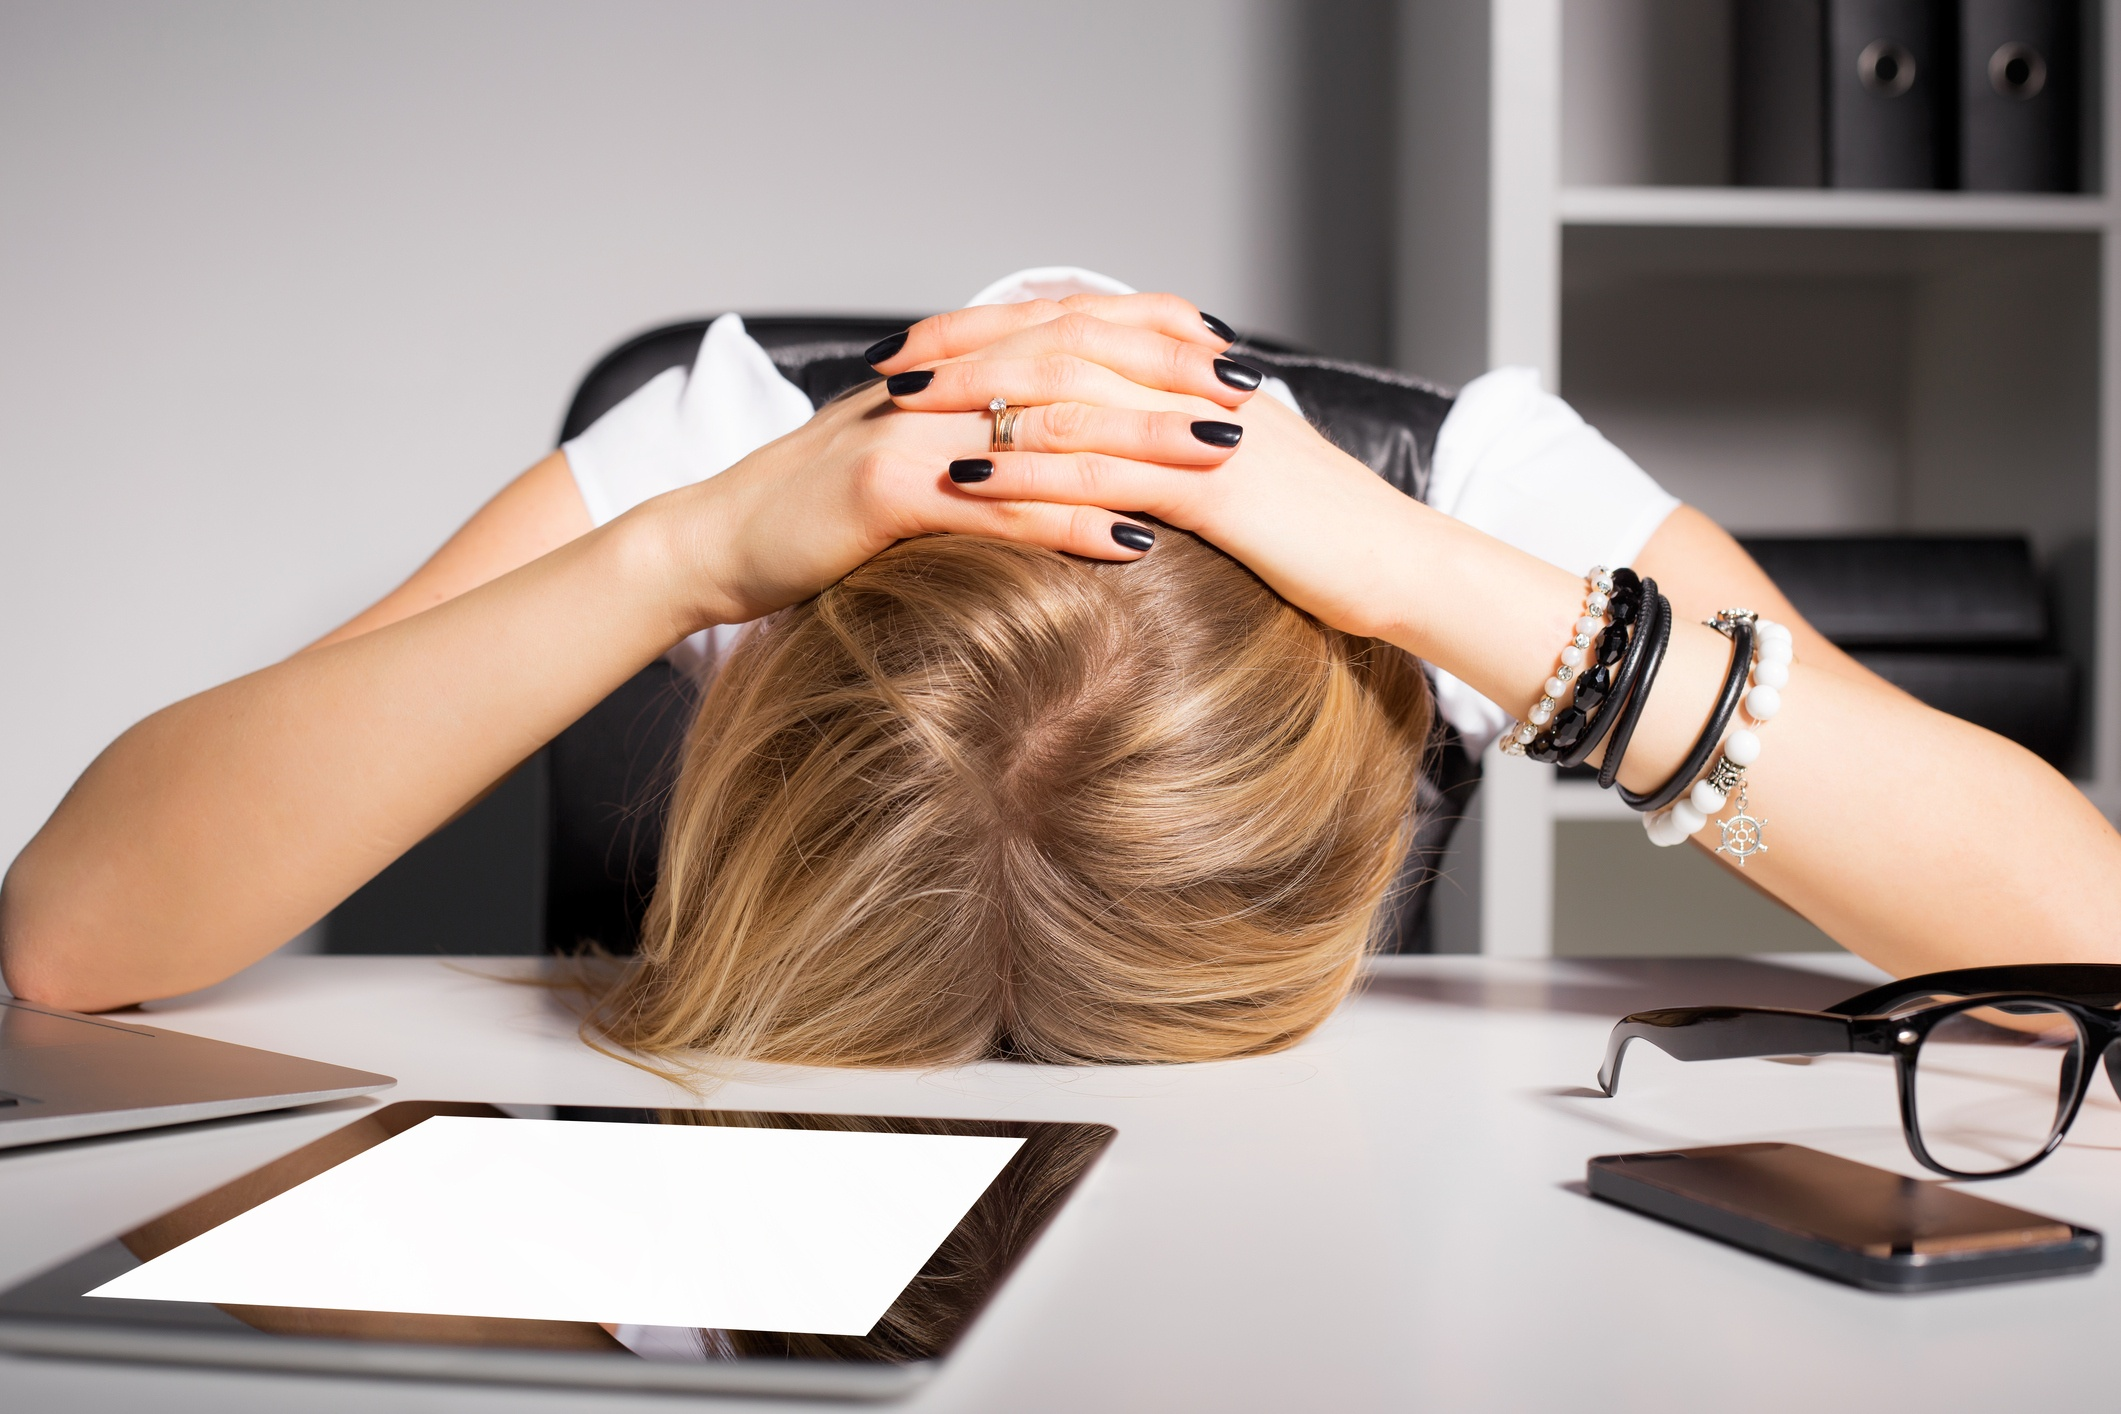 Tired and overwhelmed business woman resting her head on her desk